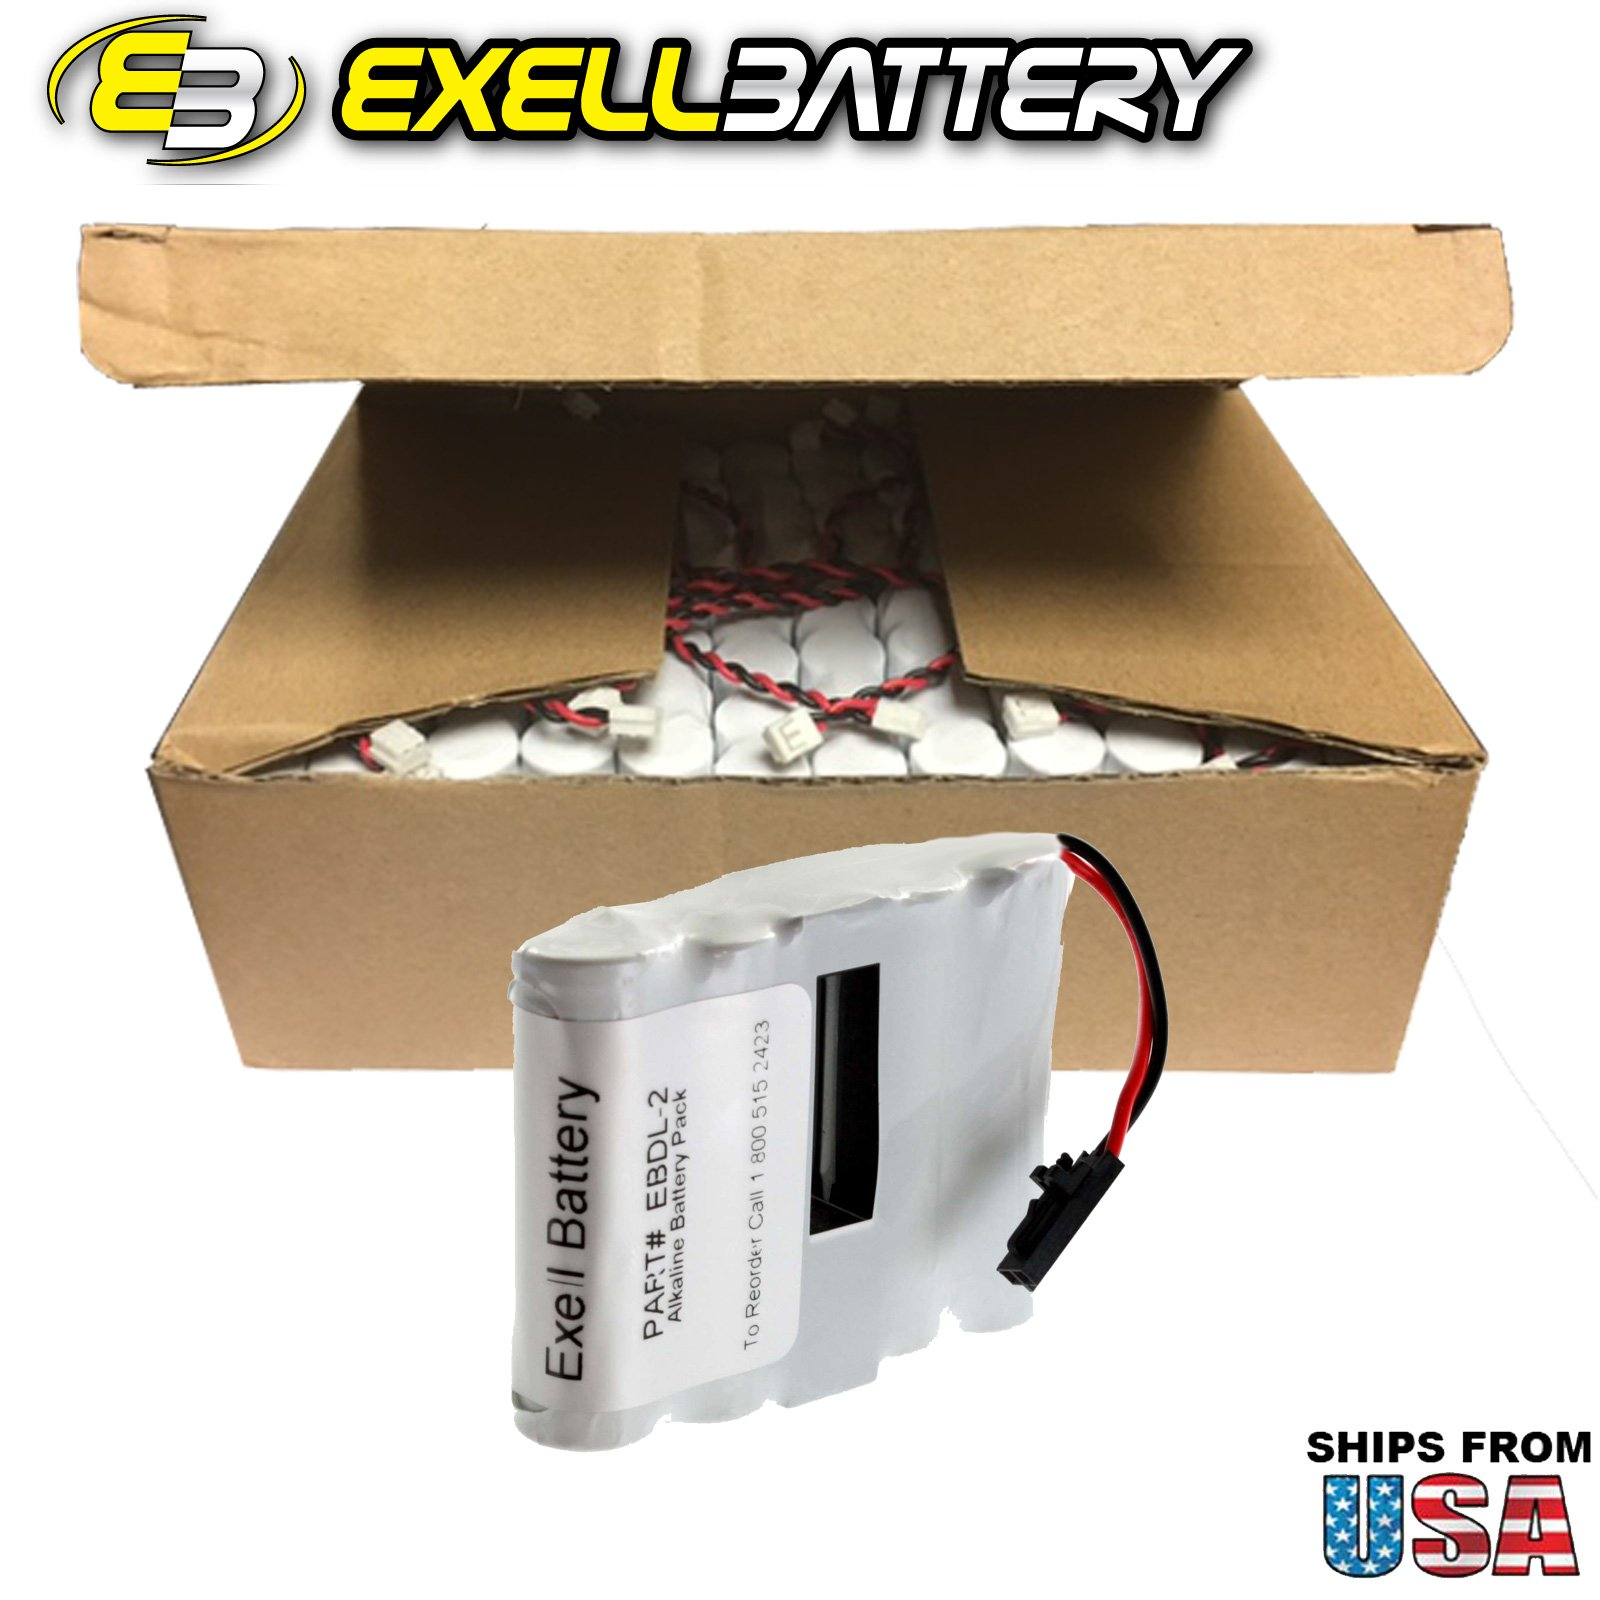 72x Exell Battery Door Lock 6V 4-Cell Battery Pack Fits Saflok 54990 Replaces HTL1 , 884955, EDL4AS, HTL17, IC, Interstate DRY5565, Passport, PMI54990, S54490, SL2500, System 5000 FAST USA SHIP